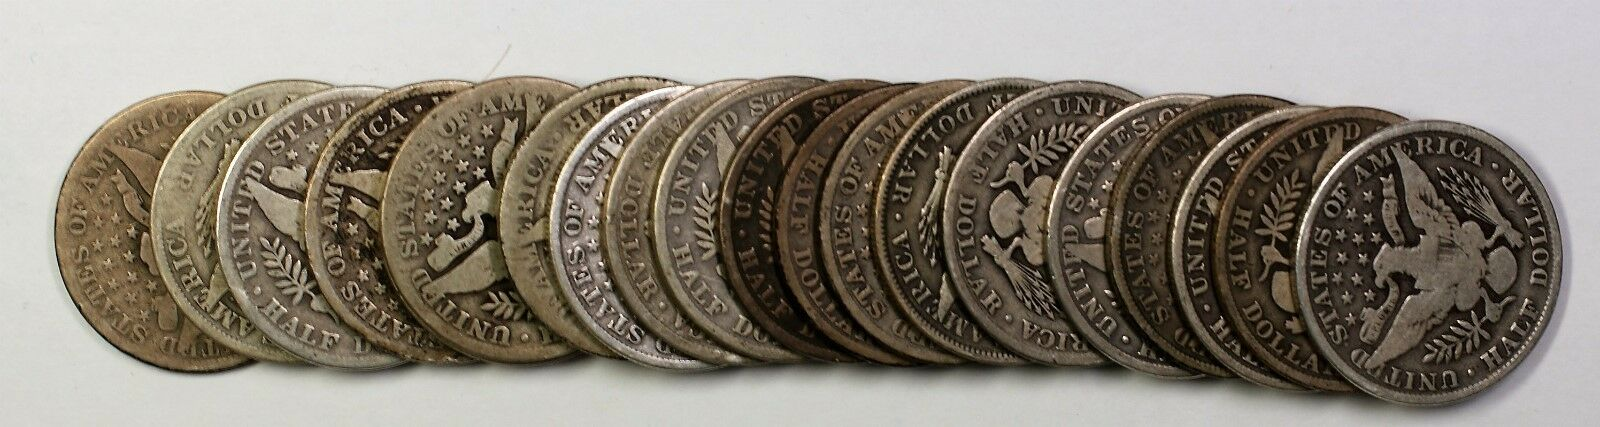 1908 Barber Half Dollar 50c Roll 20 Circulated 90% Old Silver Coins Lot